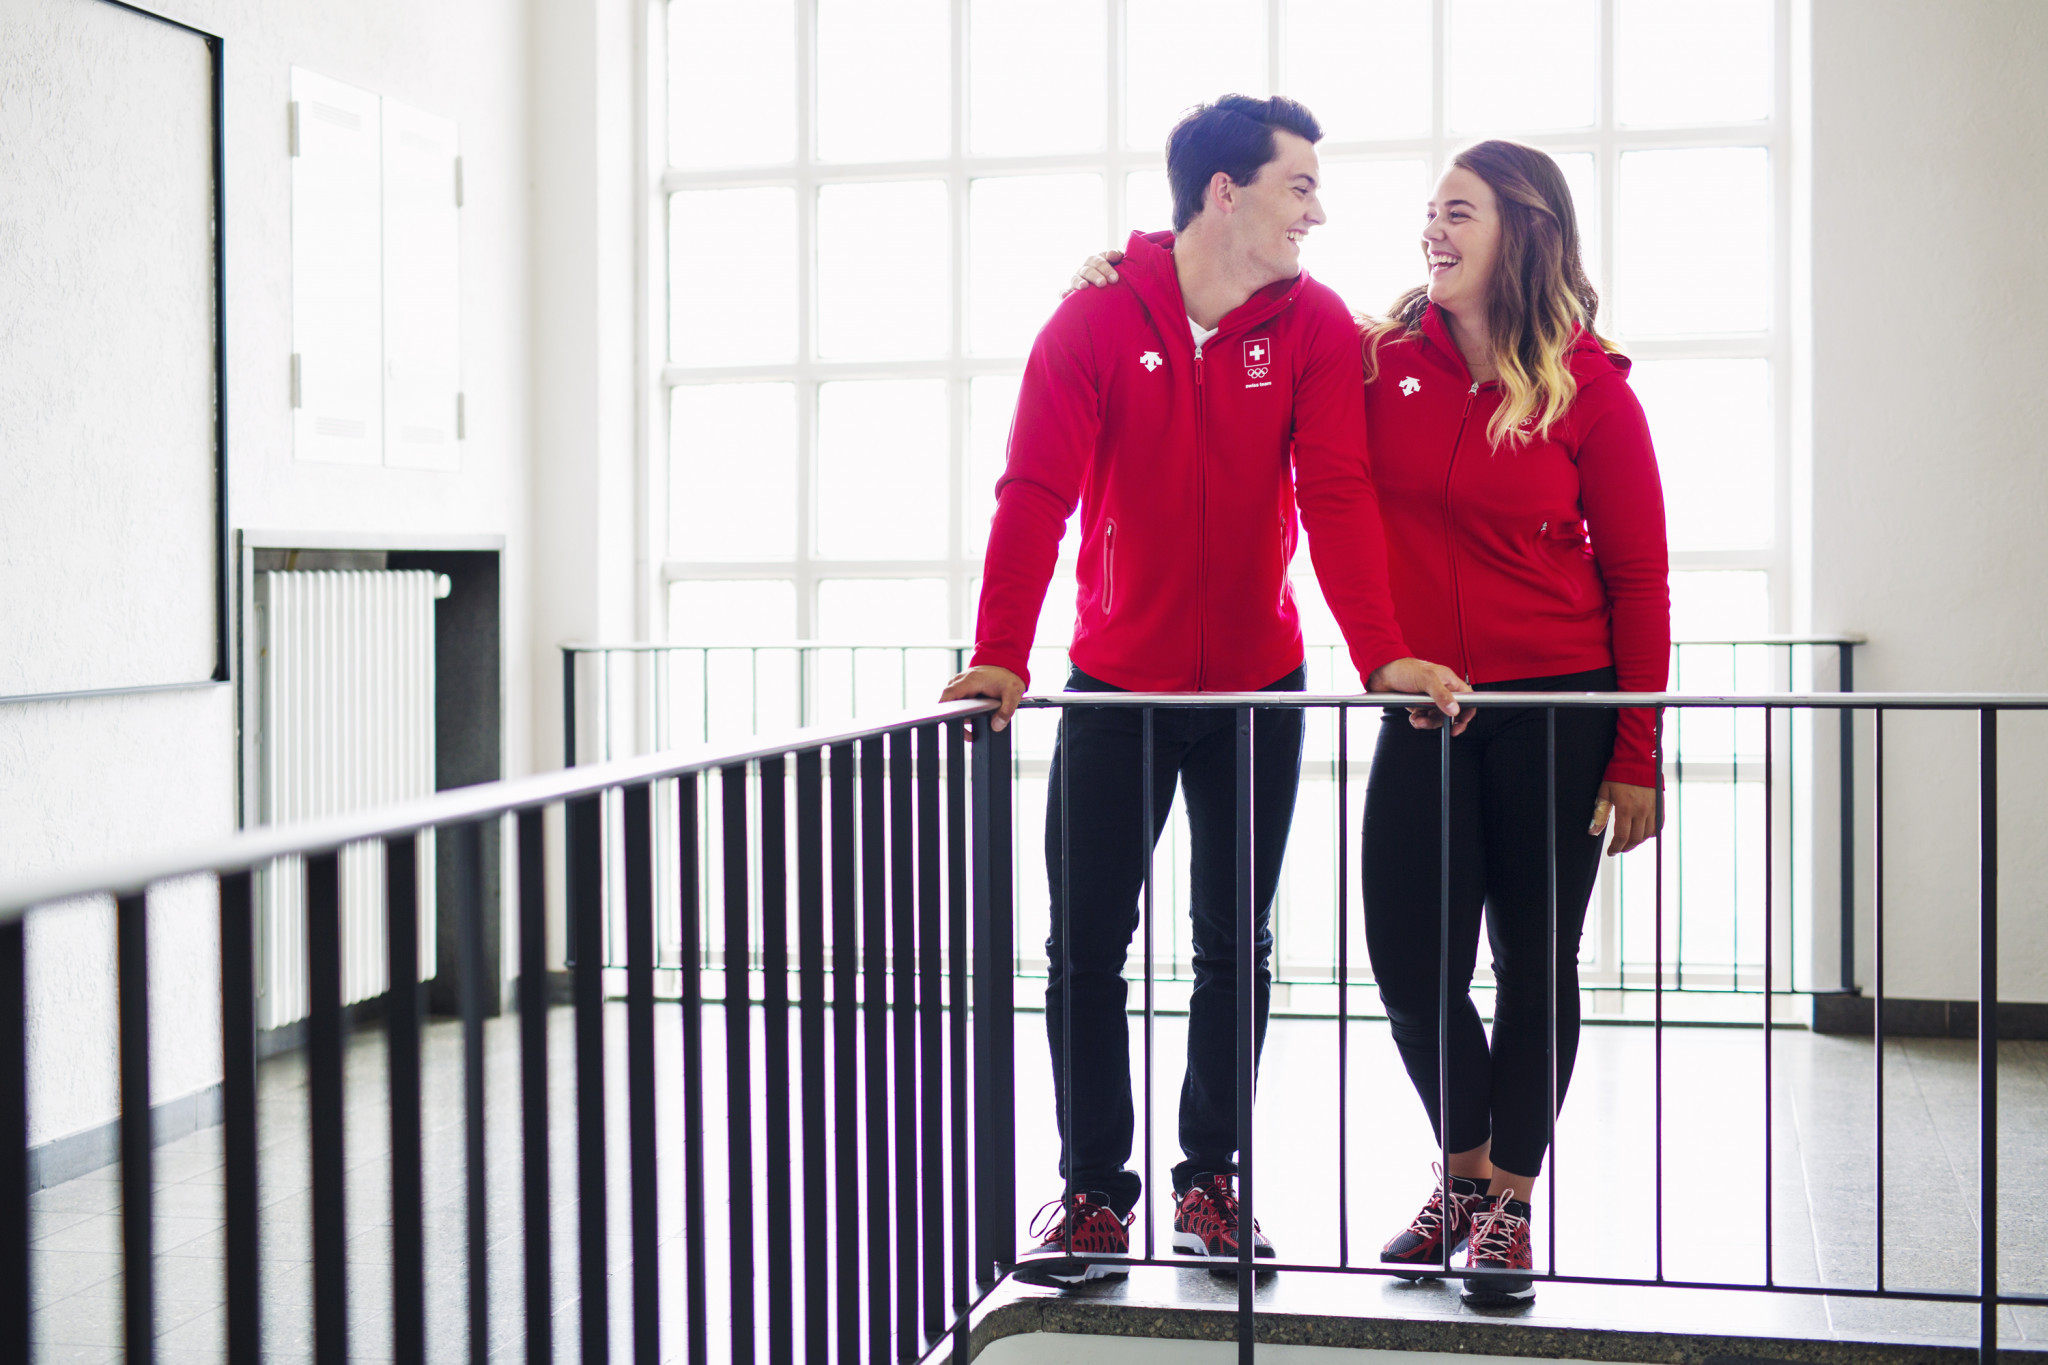 Clothing has been designed for all Games-time activities ©Swiss Olympic